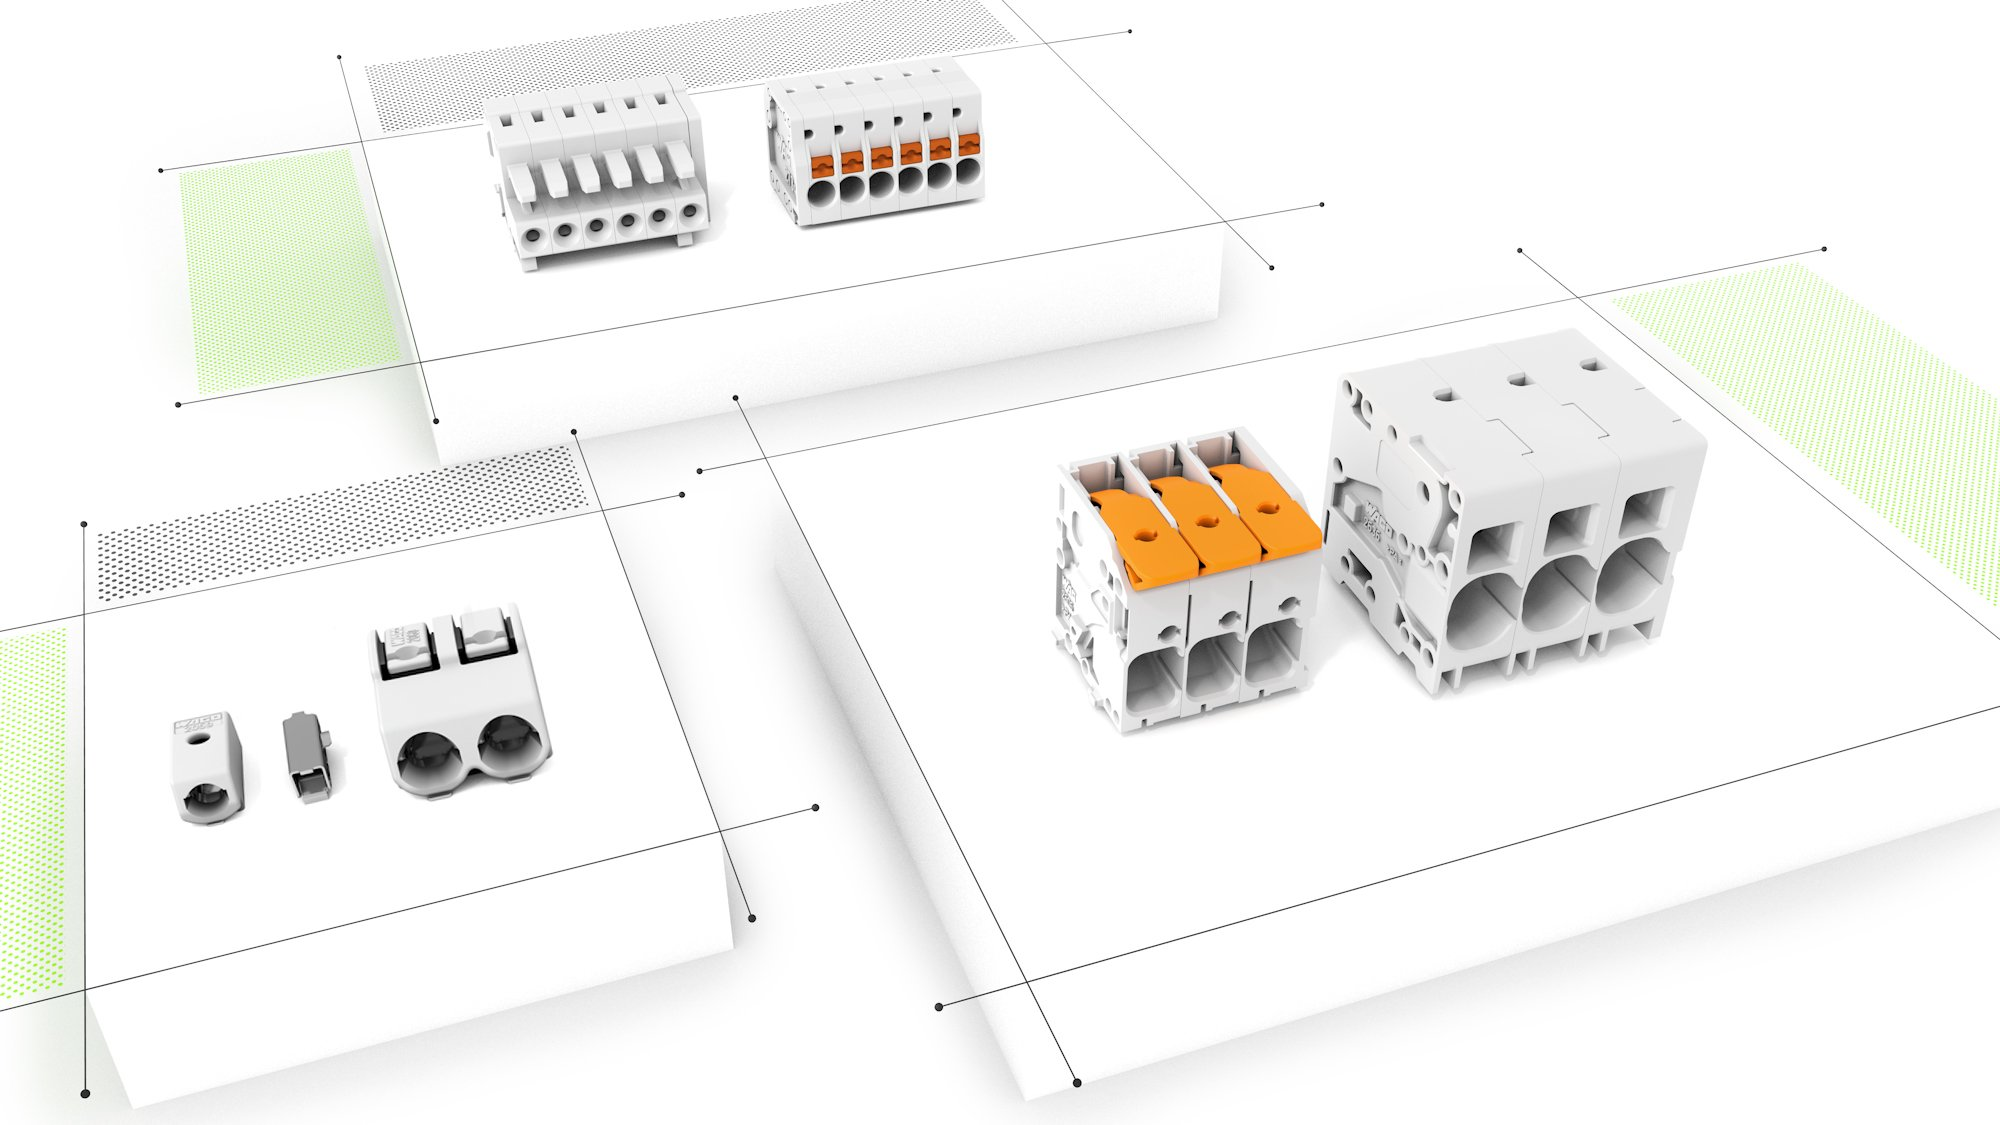 Wago Electrical Interconnections Easy Safe Maintenance Free Industrial Training Control Pcb Terminal Blocks And Connectors